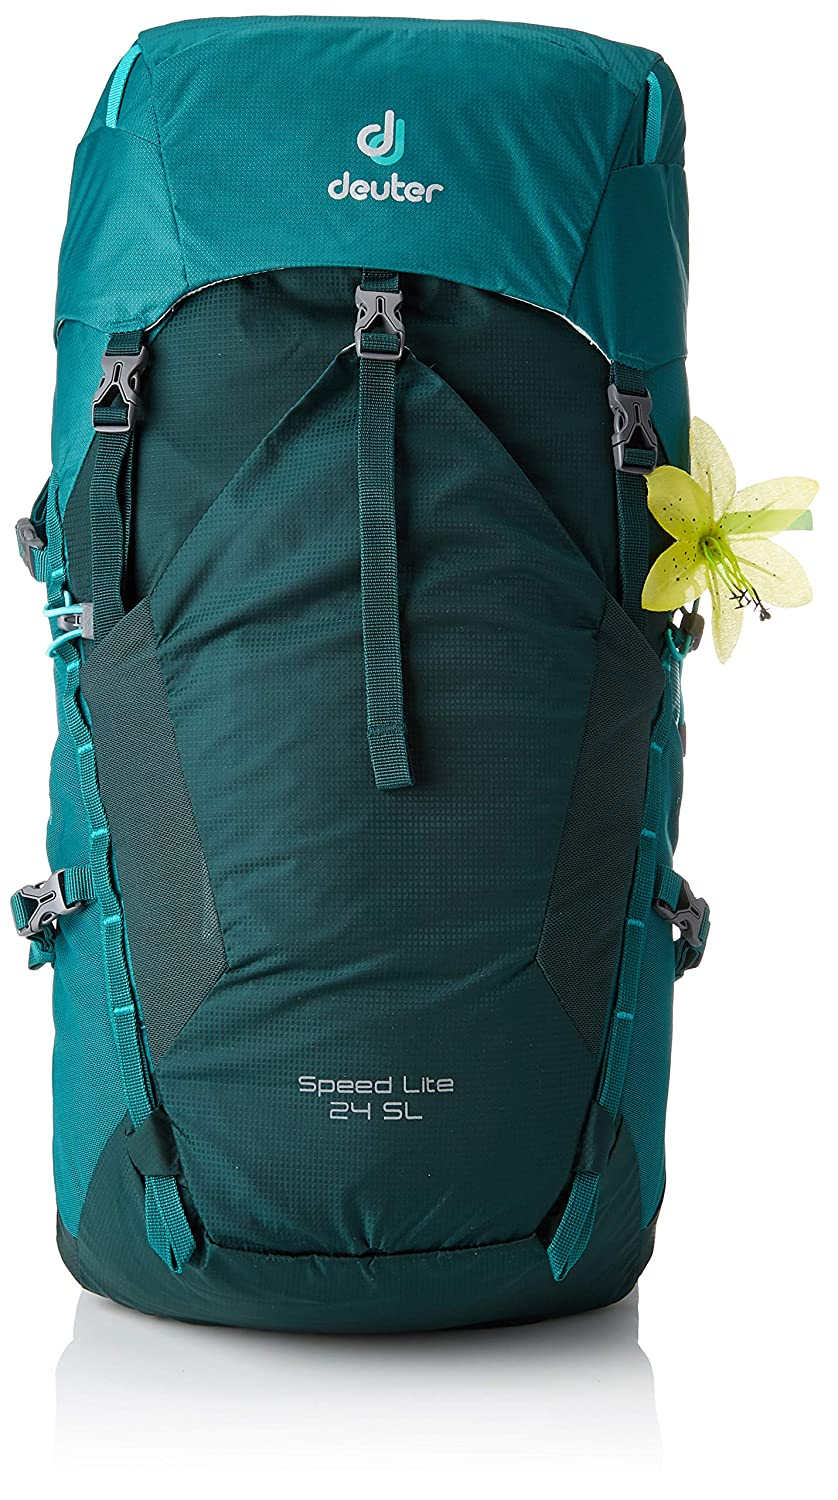 Deuter Speed Lite 30 SL, Zaino Unisex-Adulto, verde (Forest-Alpineverde), 64 Centimeters